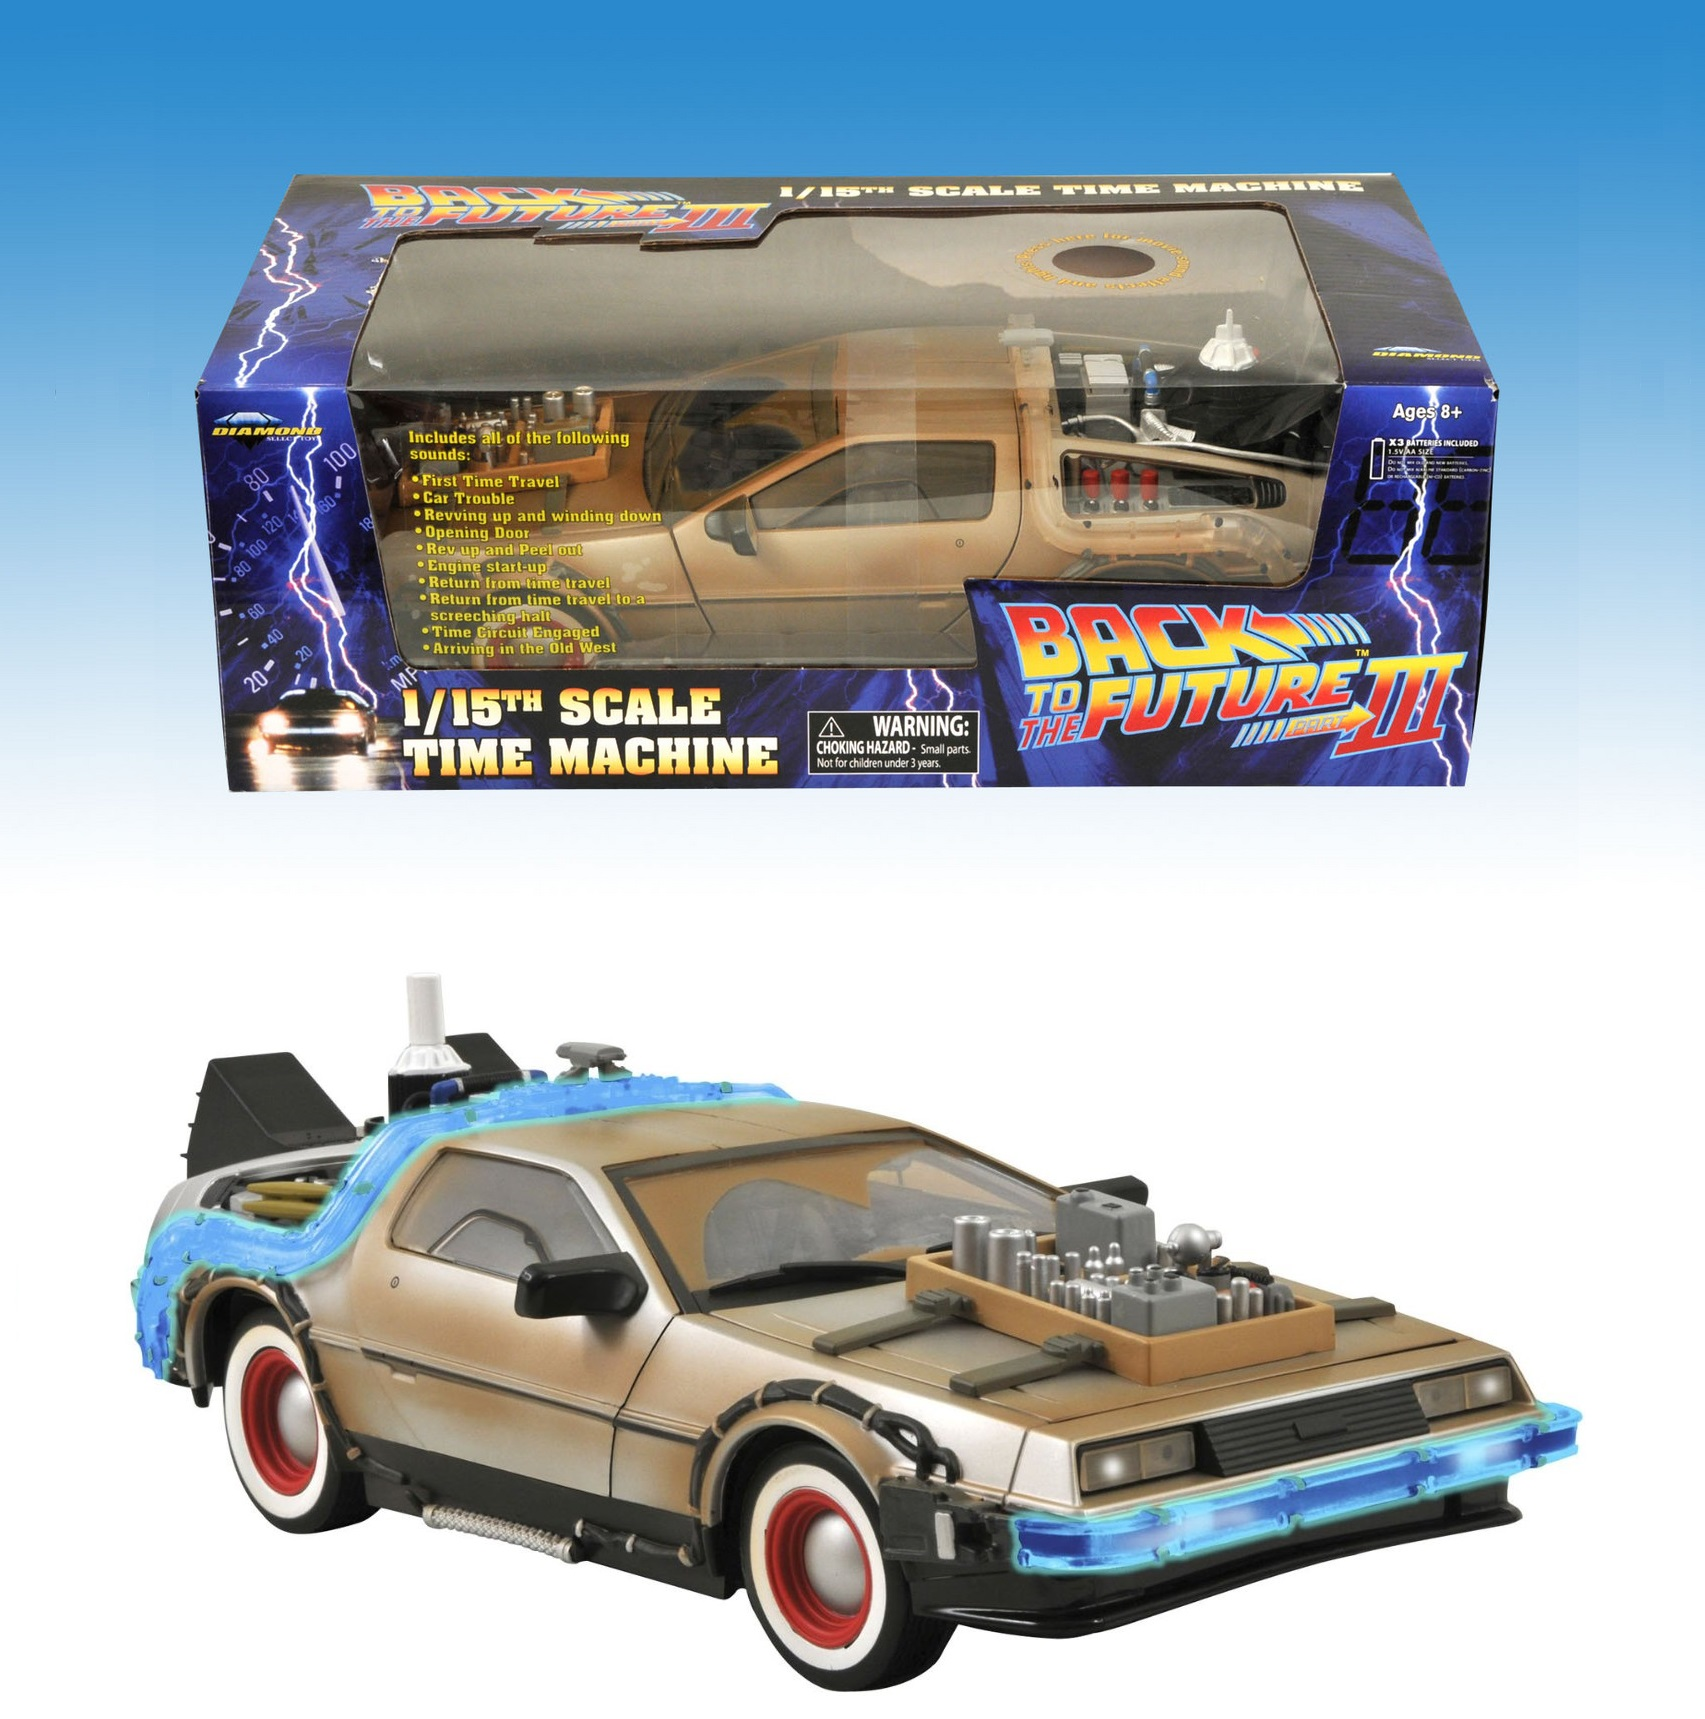 Ritorno al futuro III Back to the Future Delorean Time Machine 1:15 Diamond